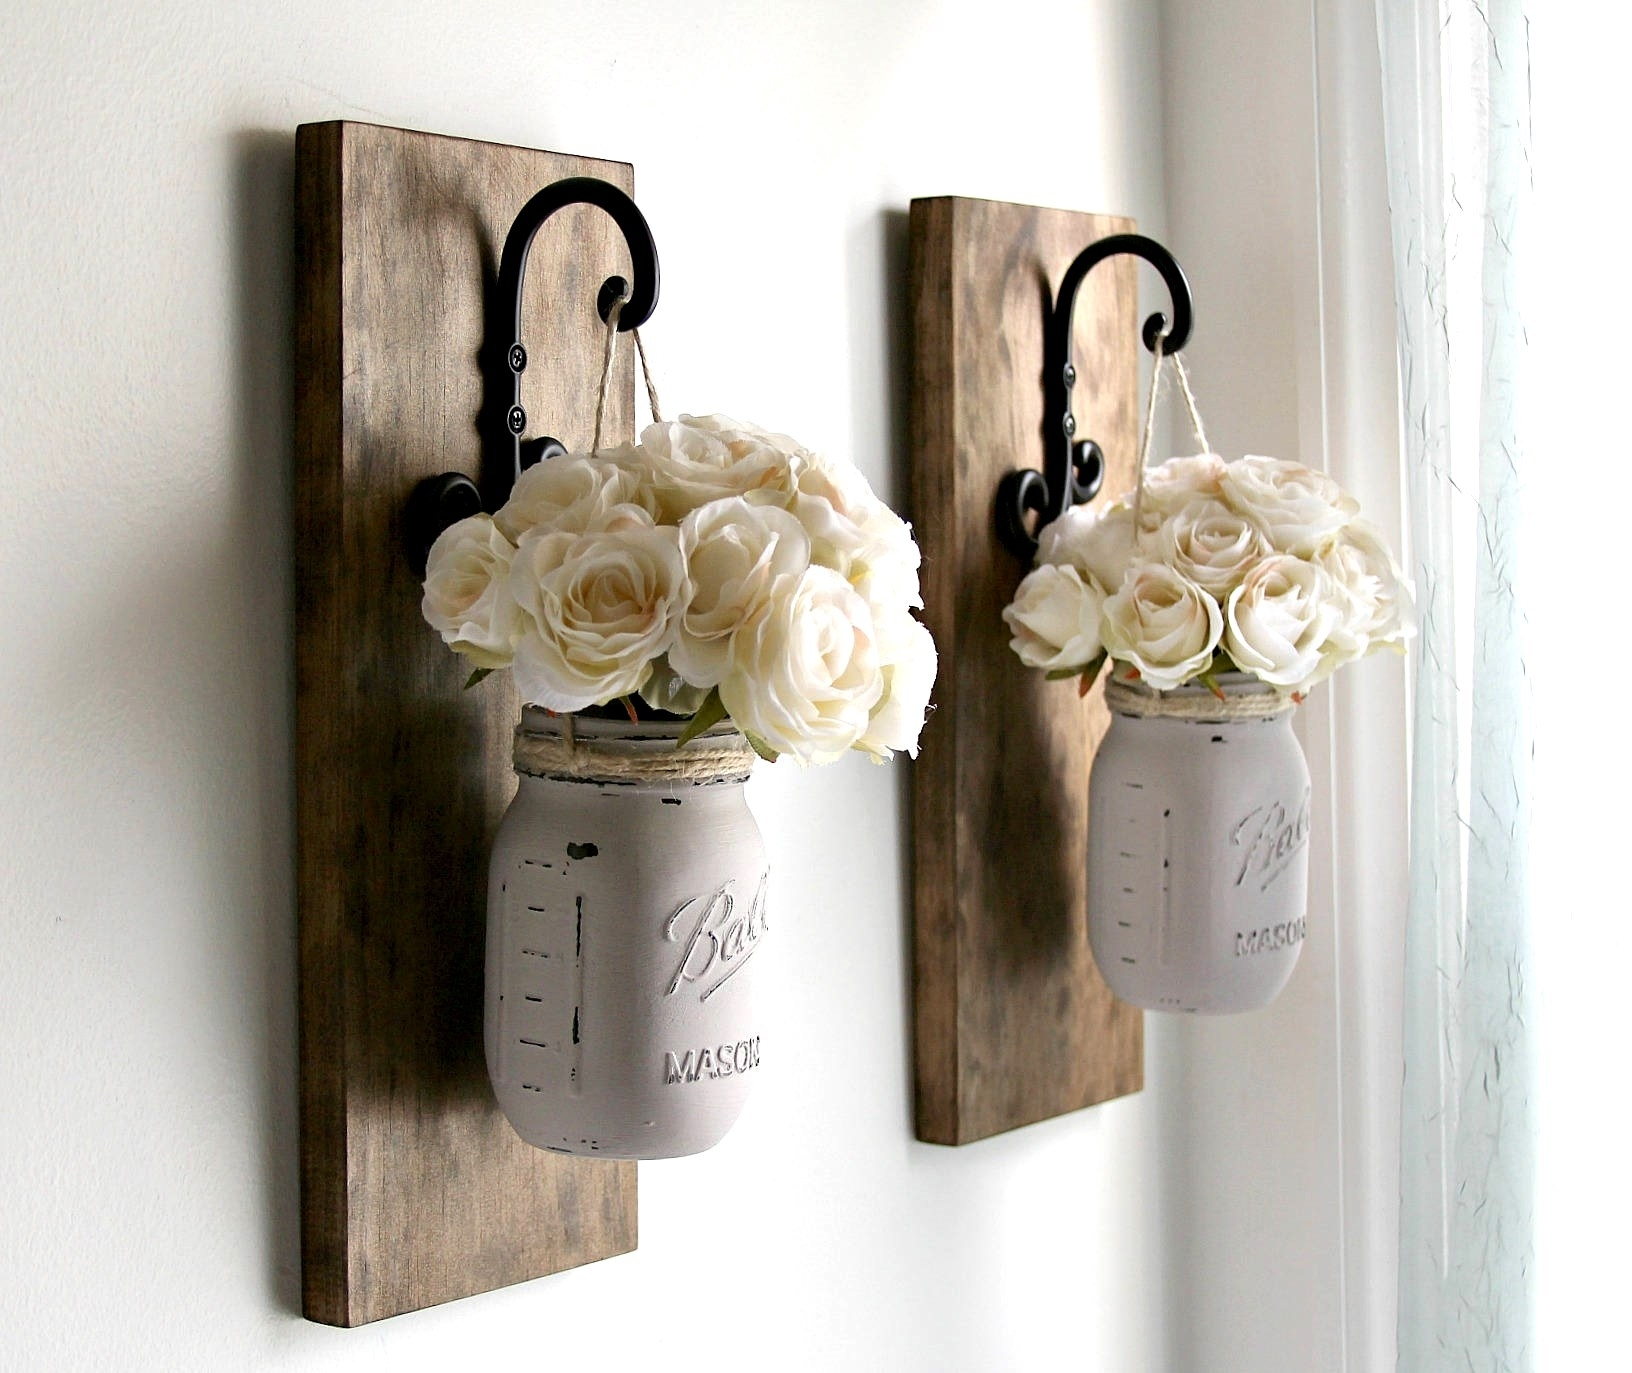 Rustic Sconces Rustic Wall Decor Mason Jars Sconce Farmhouse | Art Within Best And Newest Mason Jar Wall Art (Gallery 12 of 20)